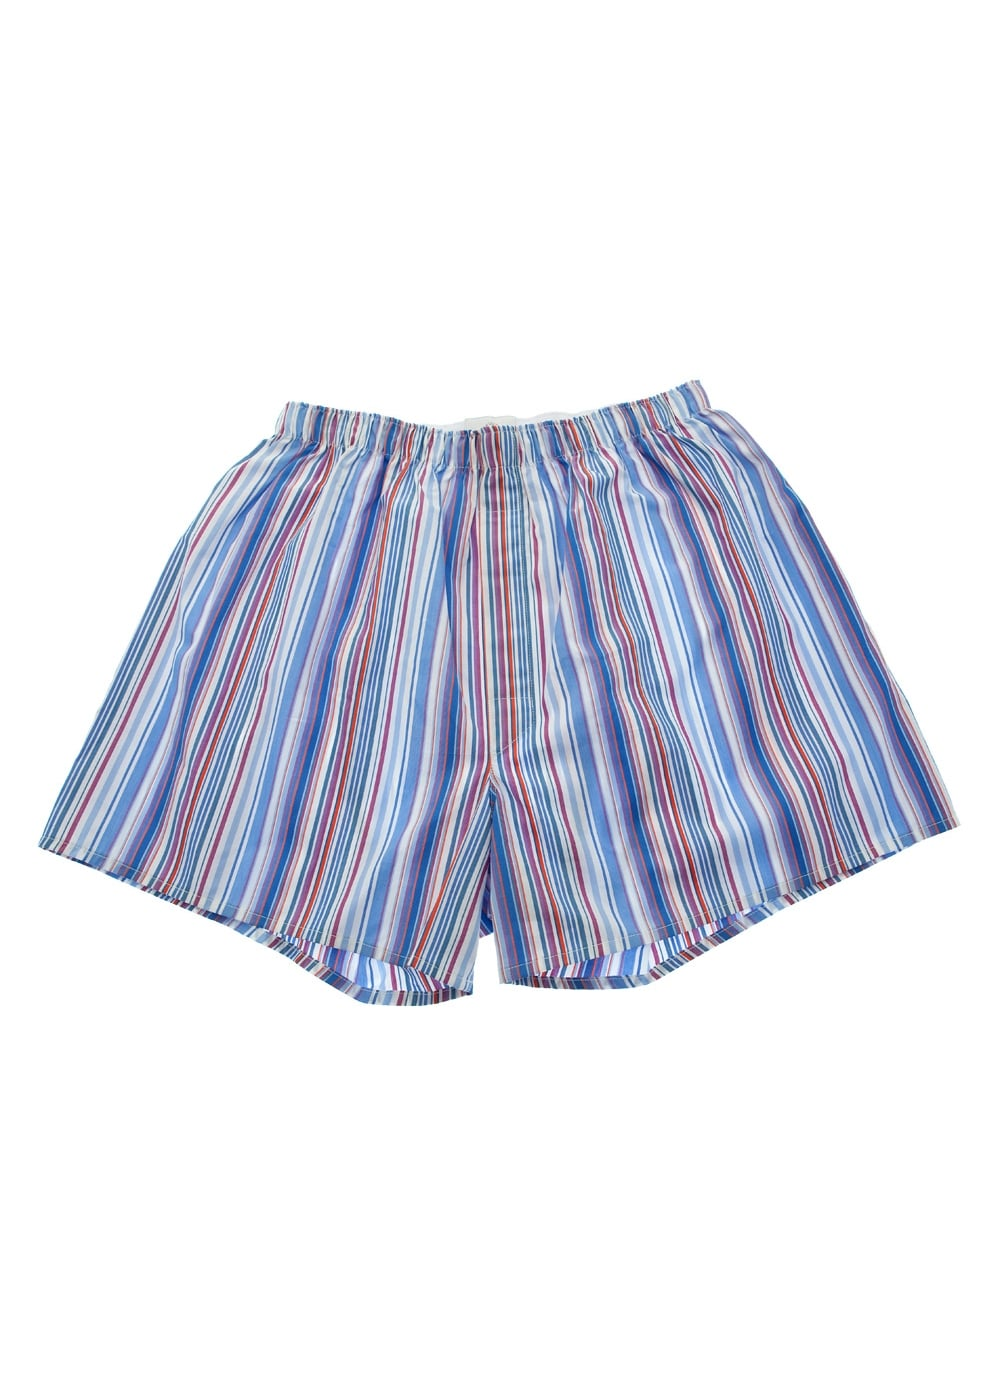 Sunspel Multi Stripe Boxers Large Image